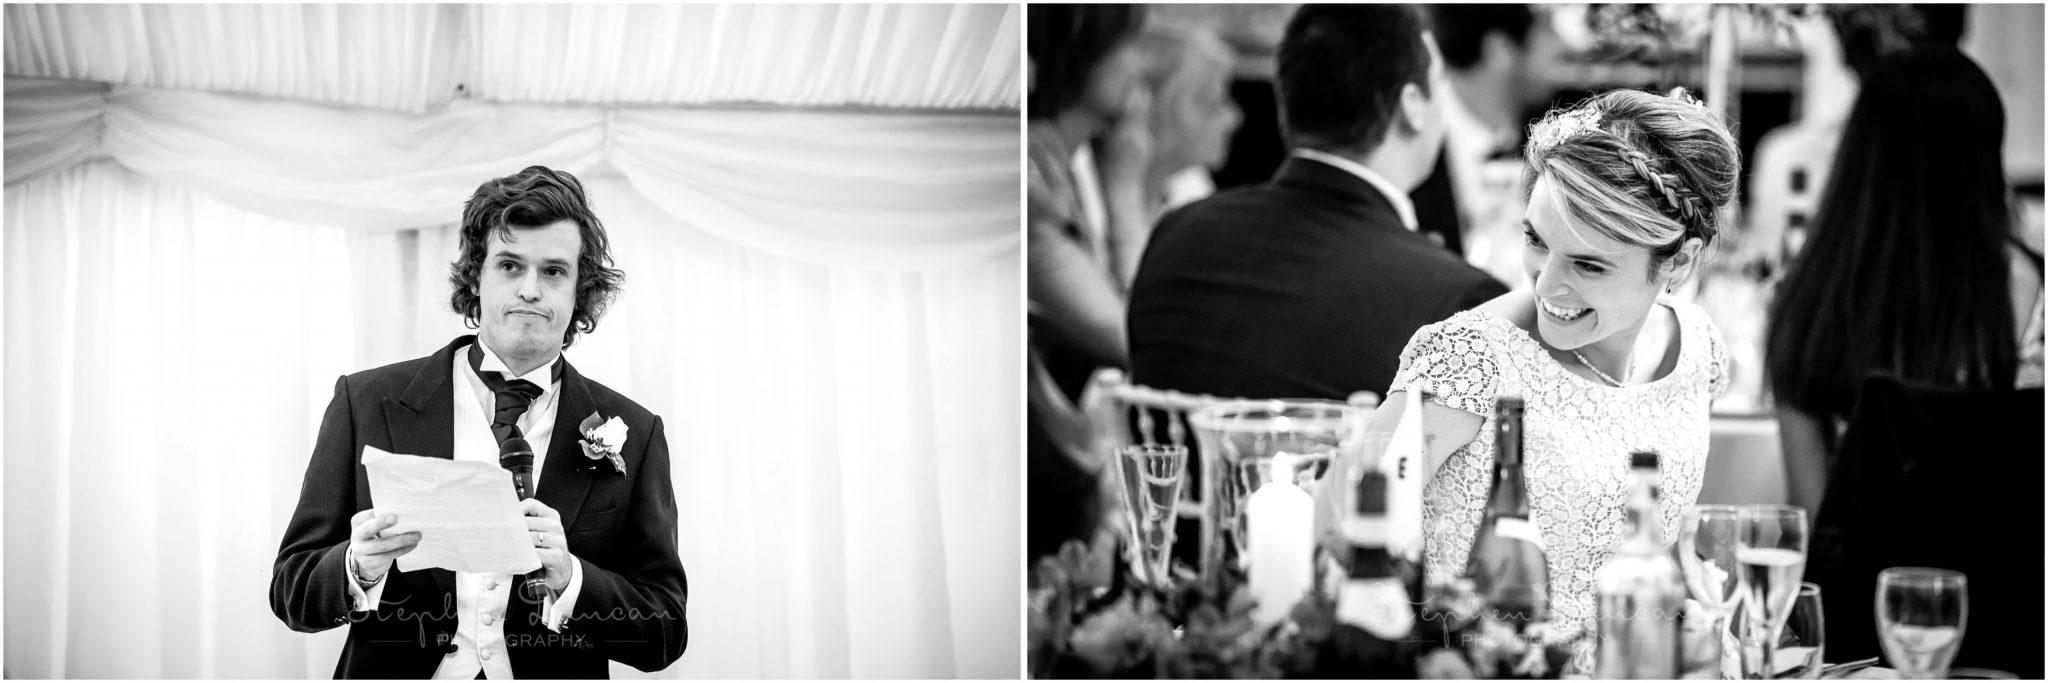 Lymington wedding photography groom speech